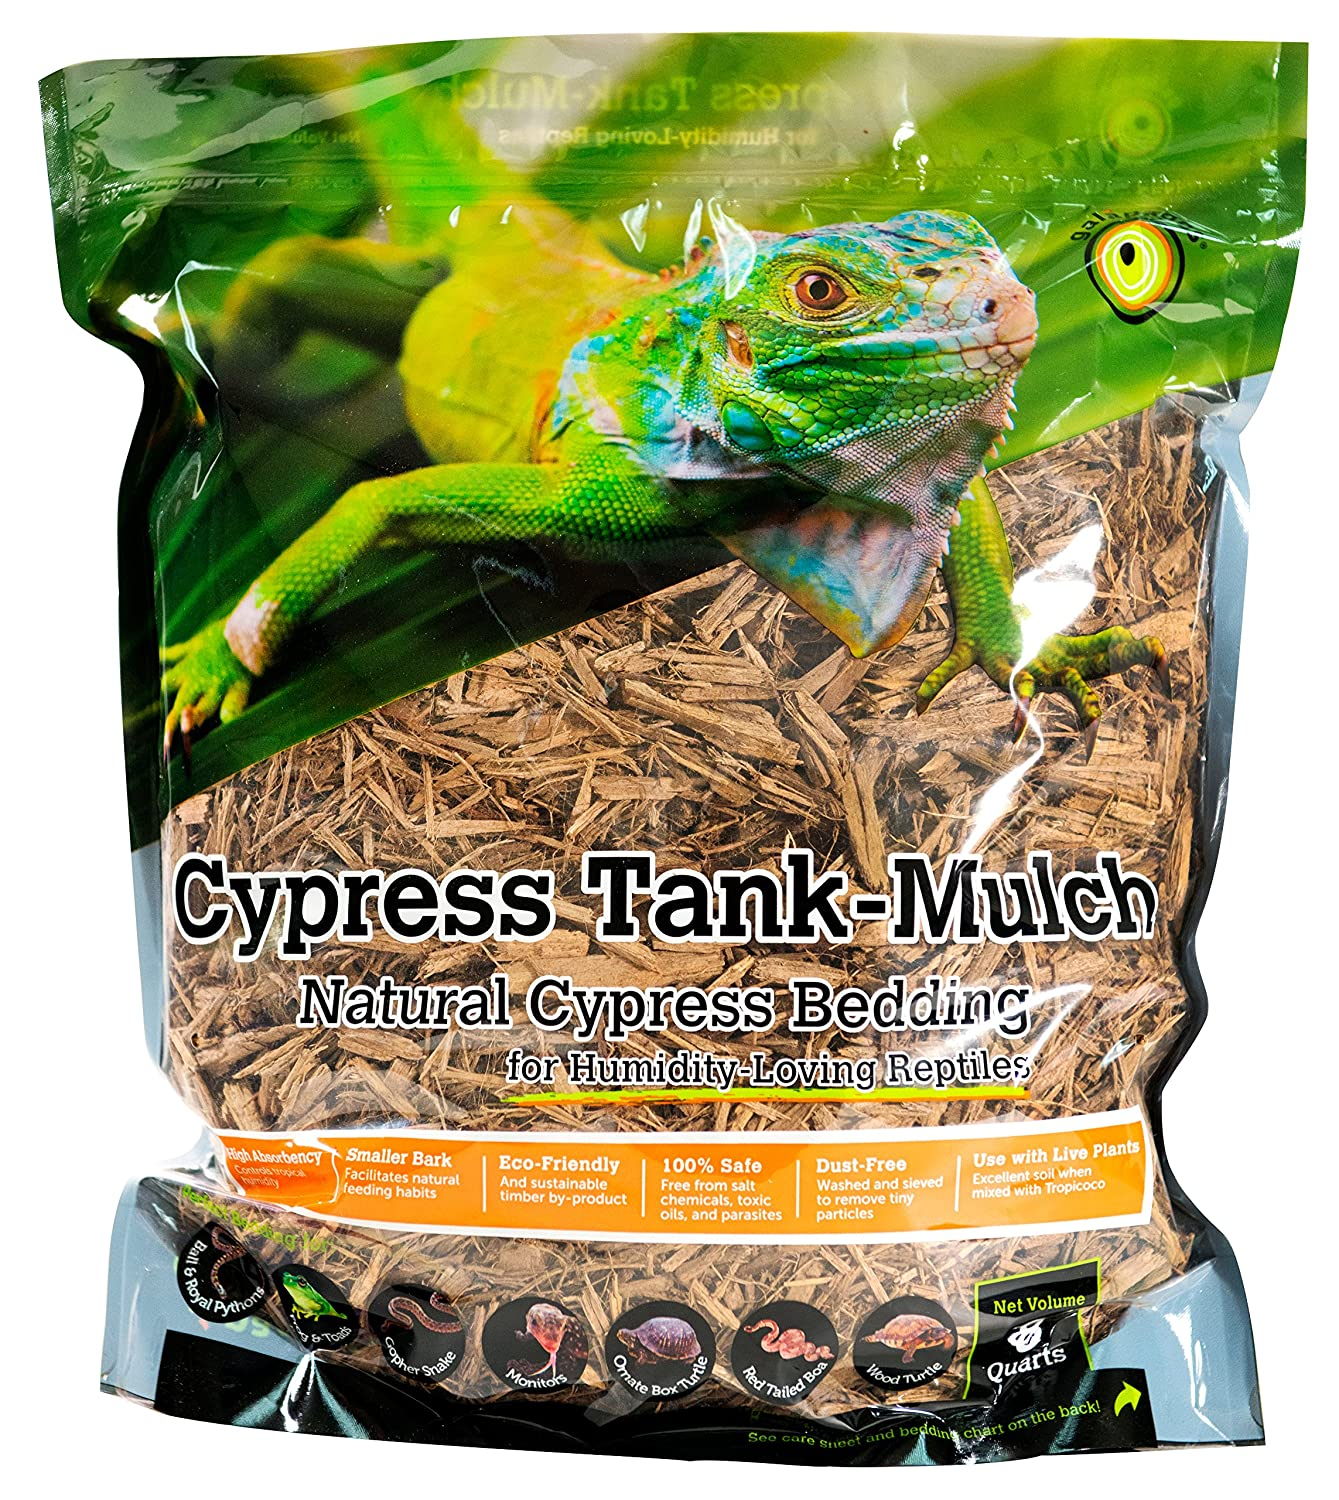 Galapagos (05054 Cypress Tank Mulch Forest Floor Bedding, 8-Quart, Natural 7 59834 05054 4